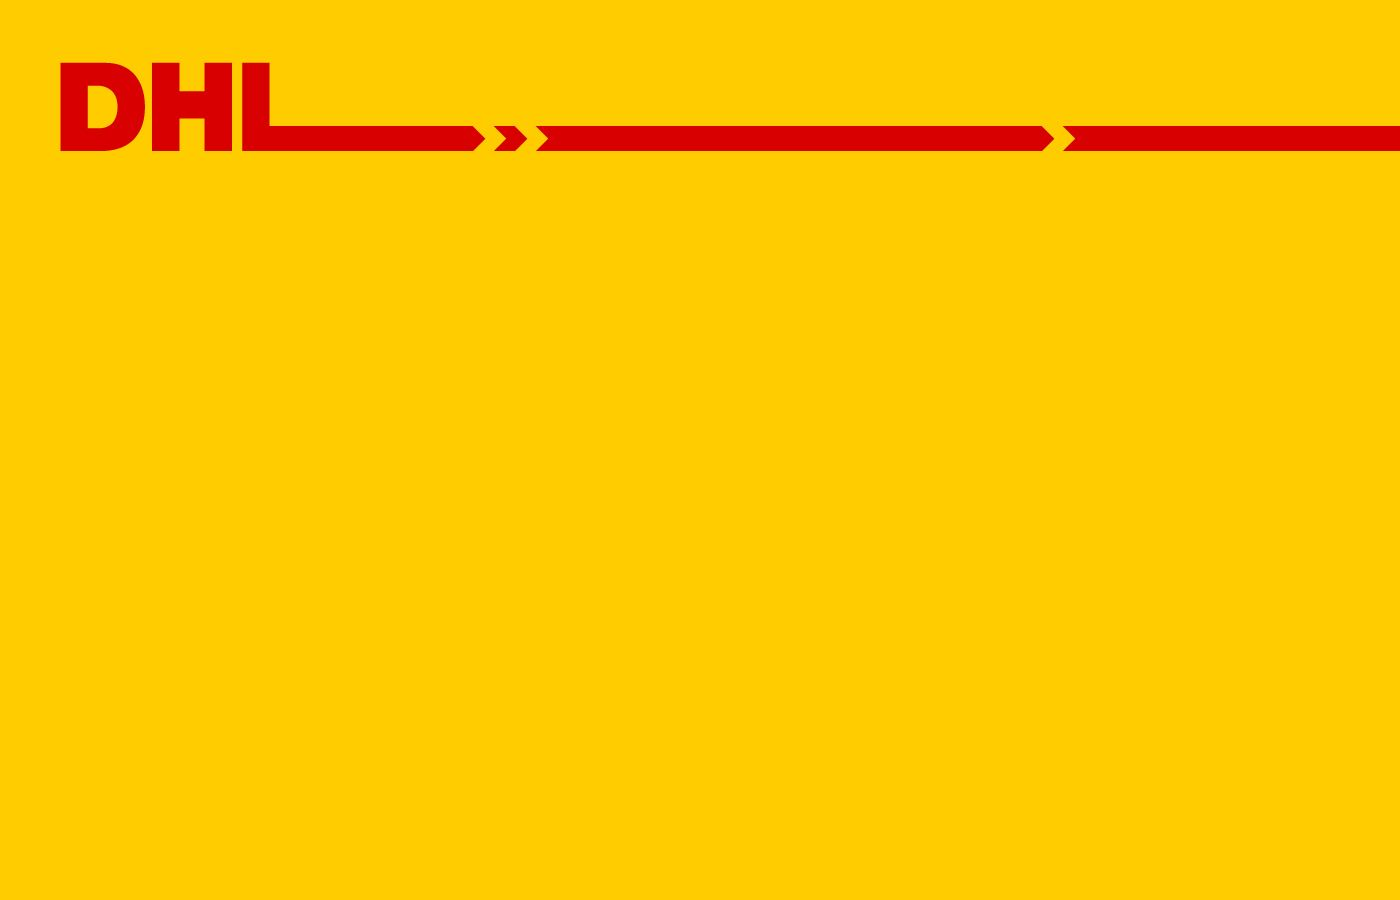 DHL Logo - DHL redesign / Personal on Behance